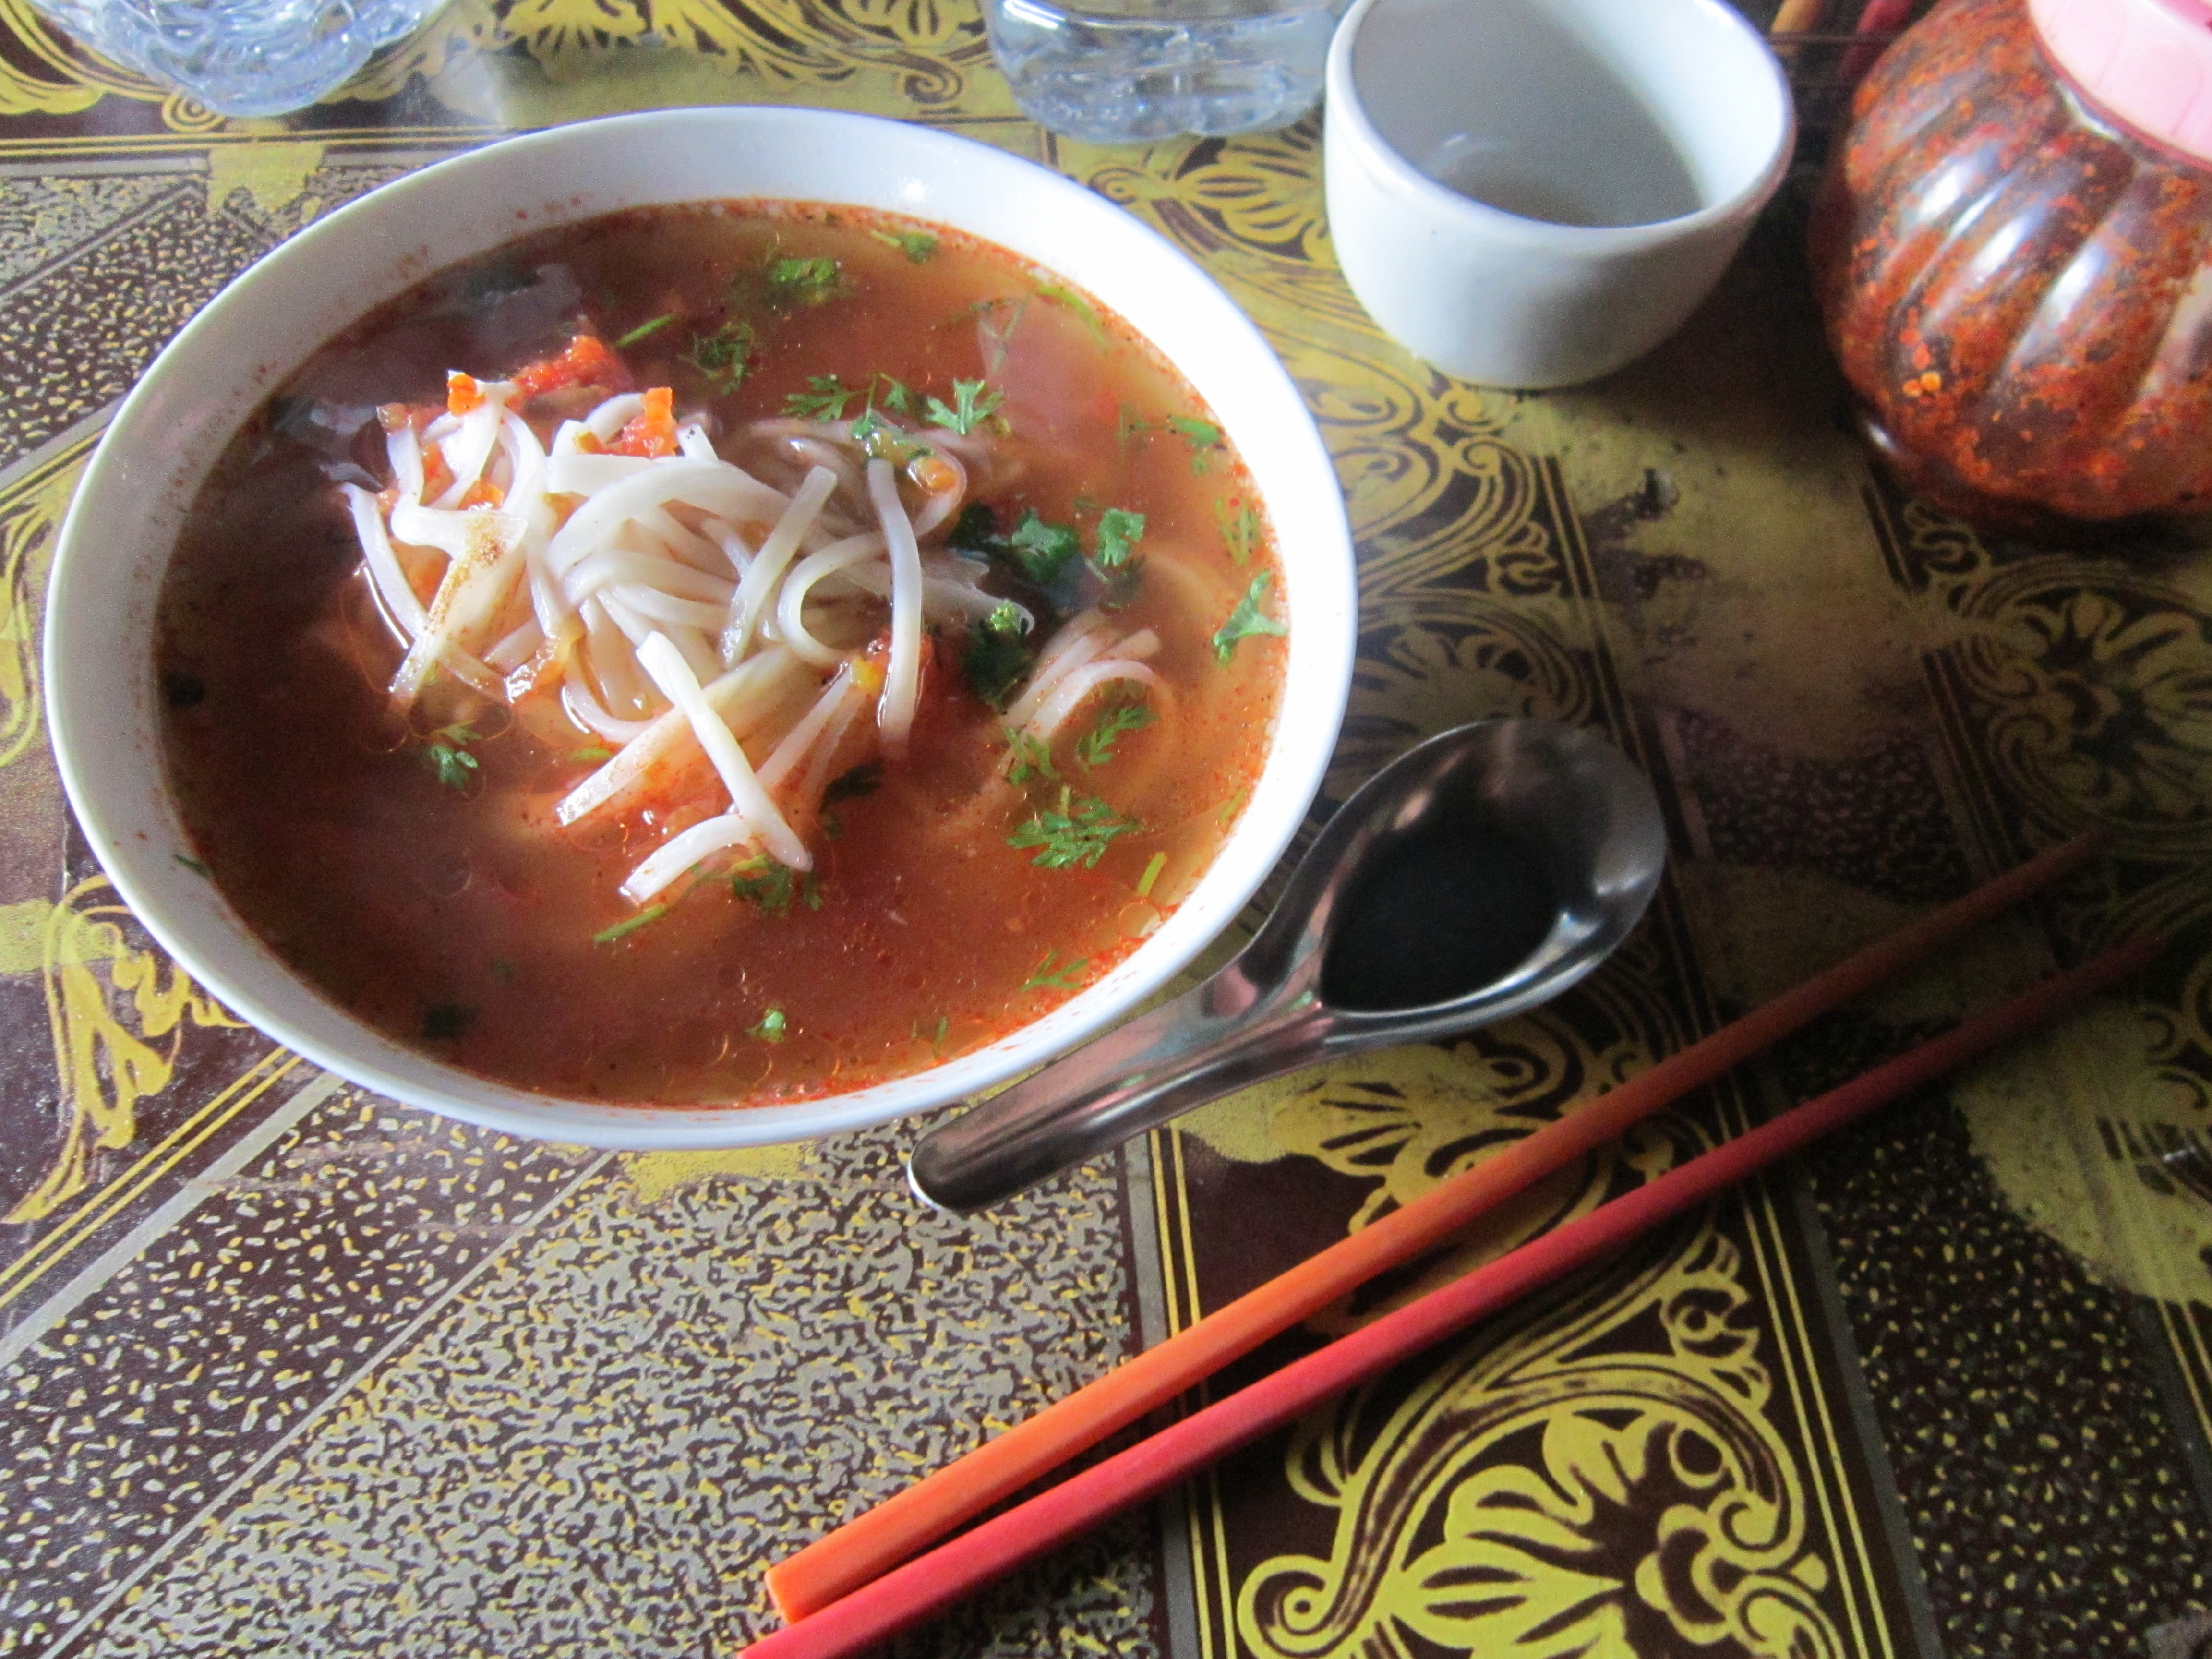 Shan Noodles. Food for a Vegetarian In Southeast Asia